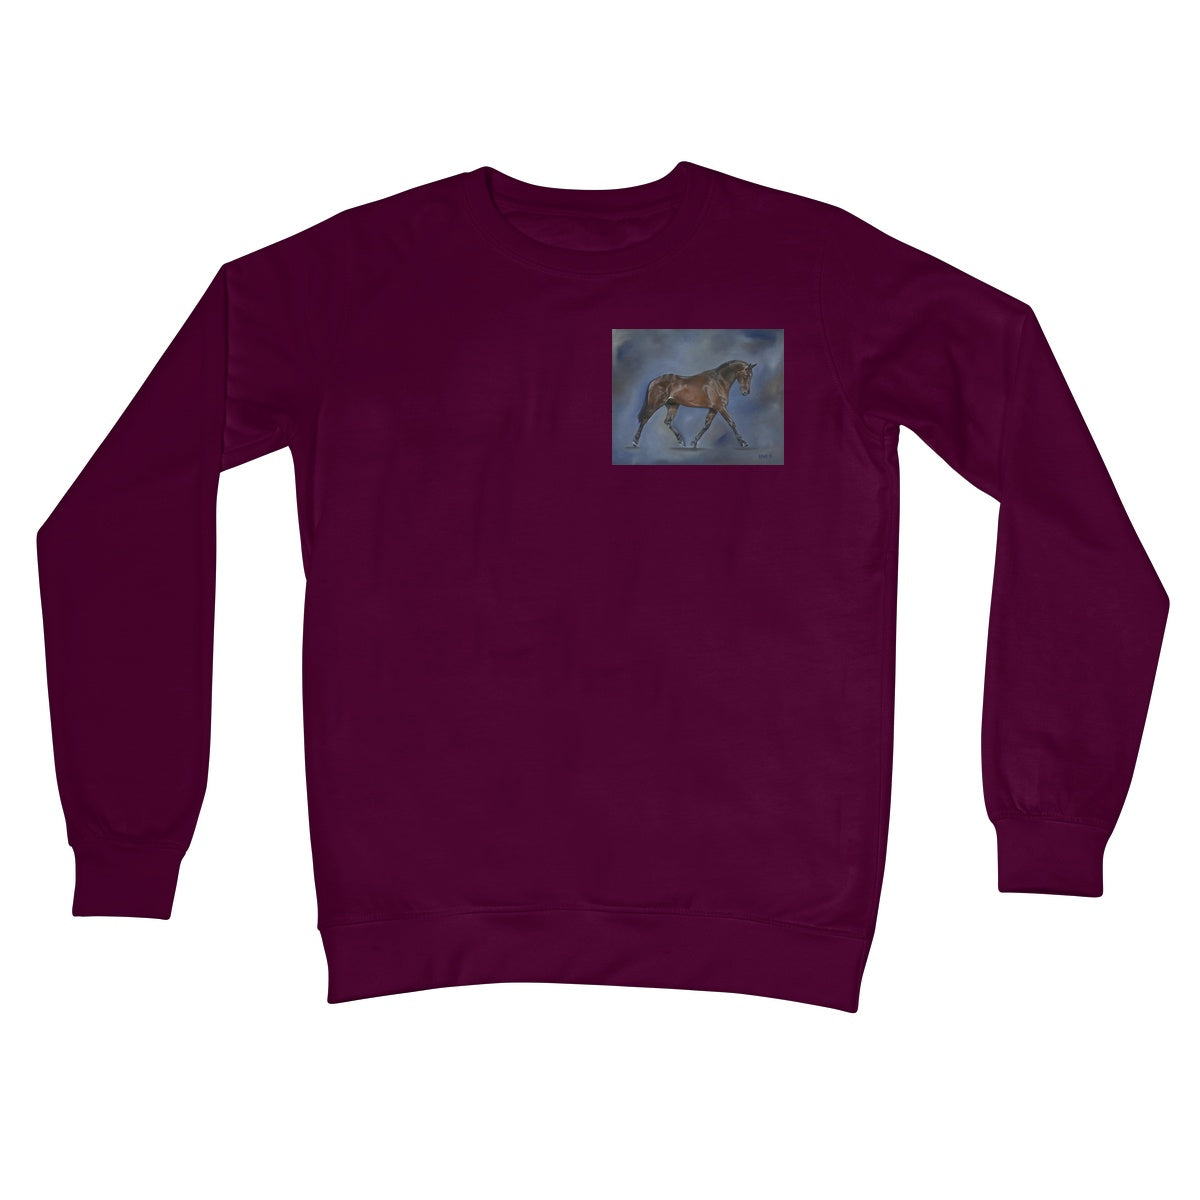 Dressage Crew Neck Sweatshirt